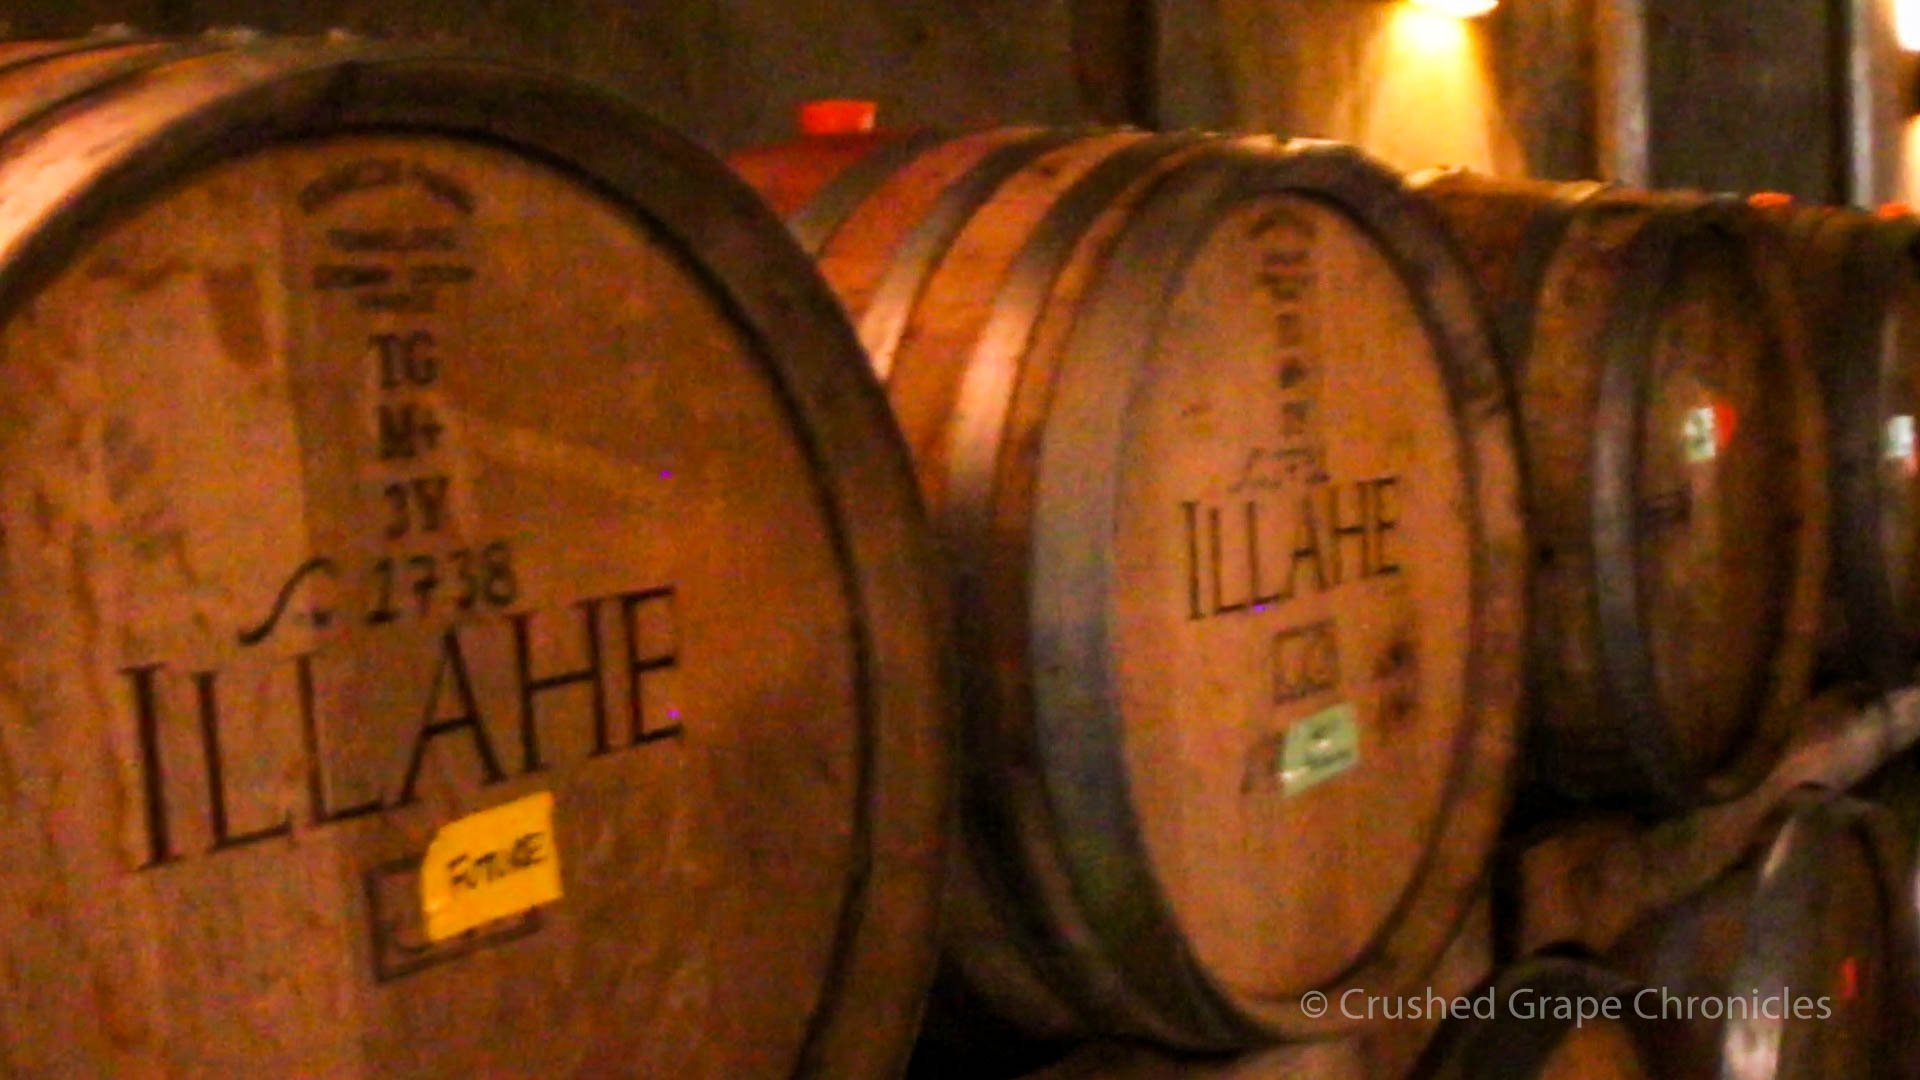 Illahe Vineyards Cellar